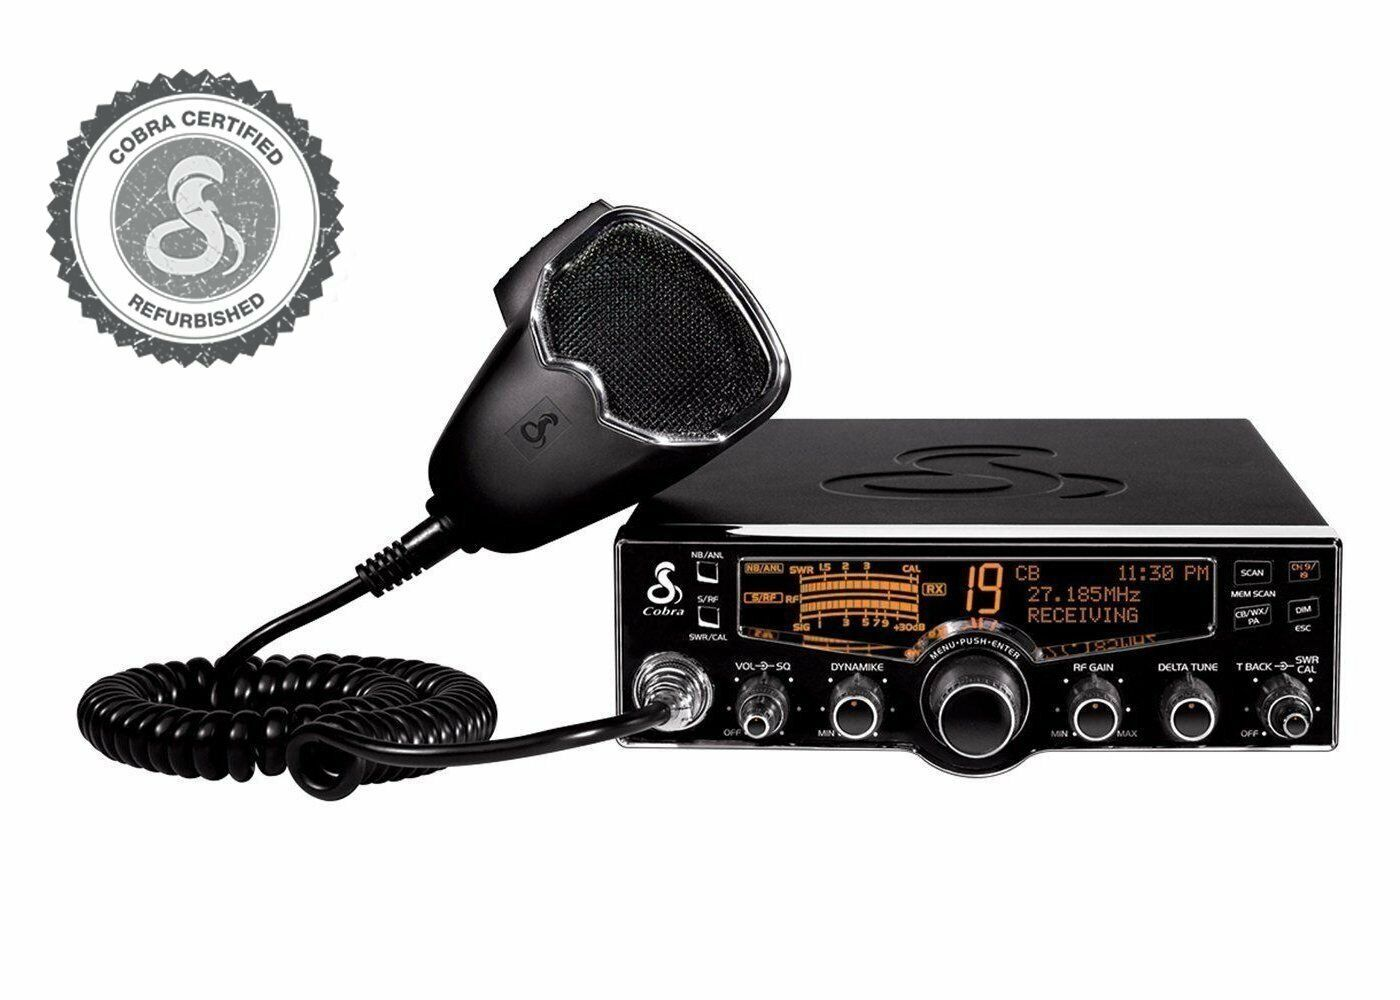 Cobra Model 29 LX Certified Refurbished Full Featured Professional CB Radio. Available Now for 99.99